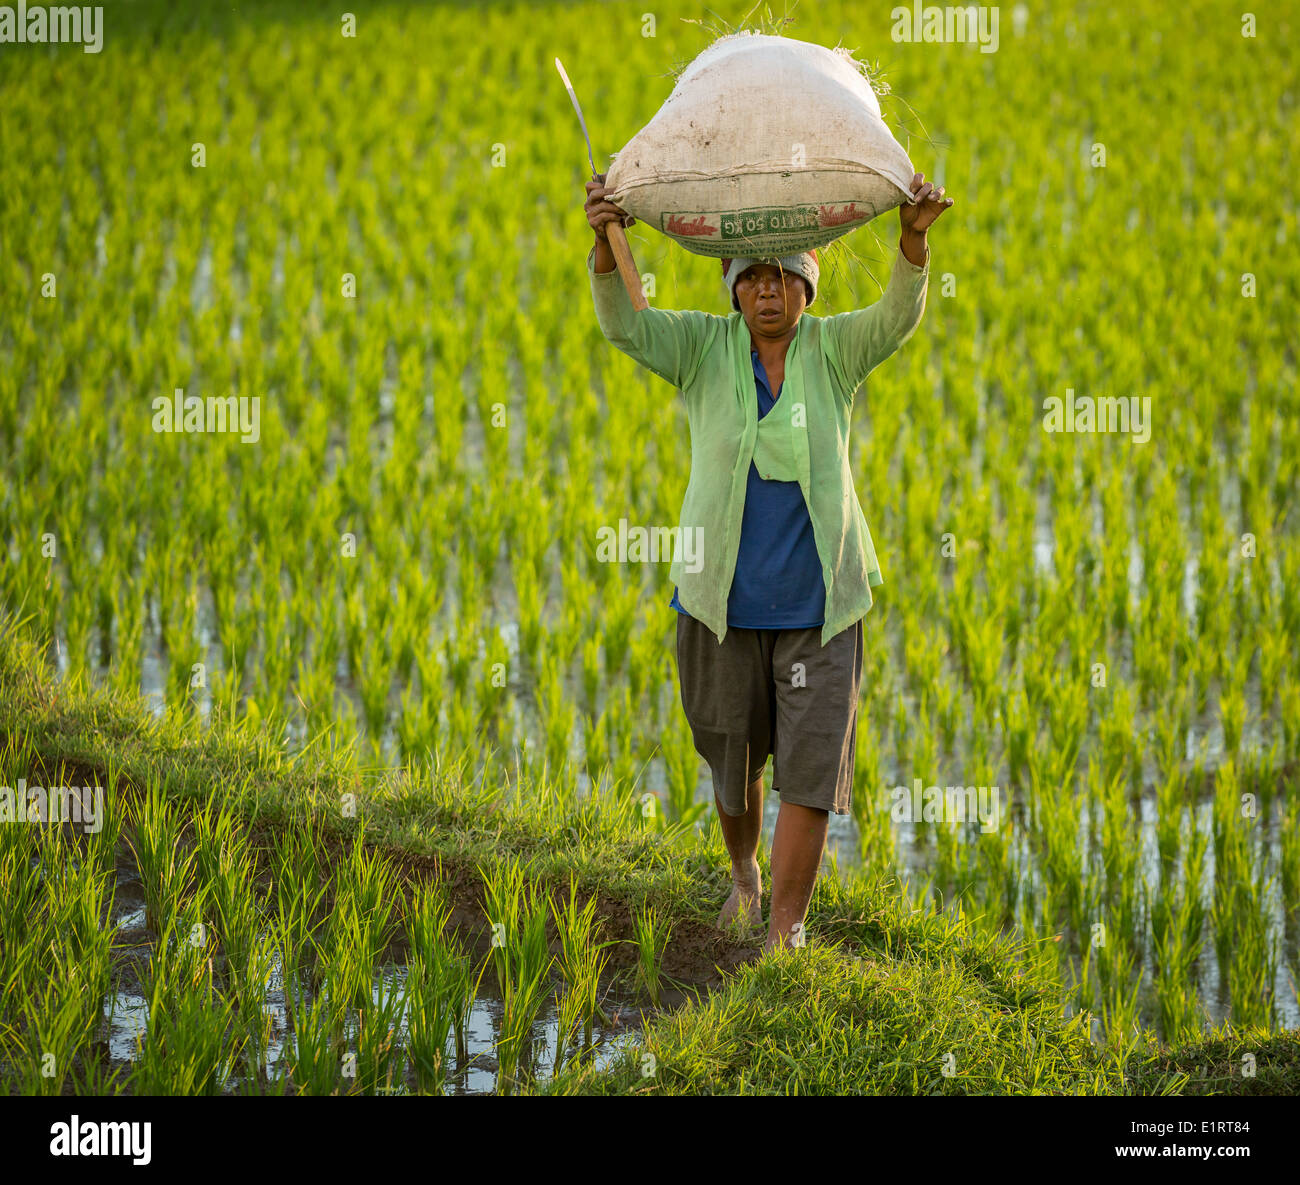 Woman carrying rice in a rice field, Ubud region, Bali, Indonesia - Stock Image